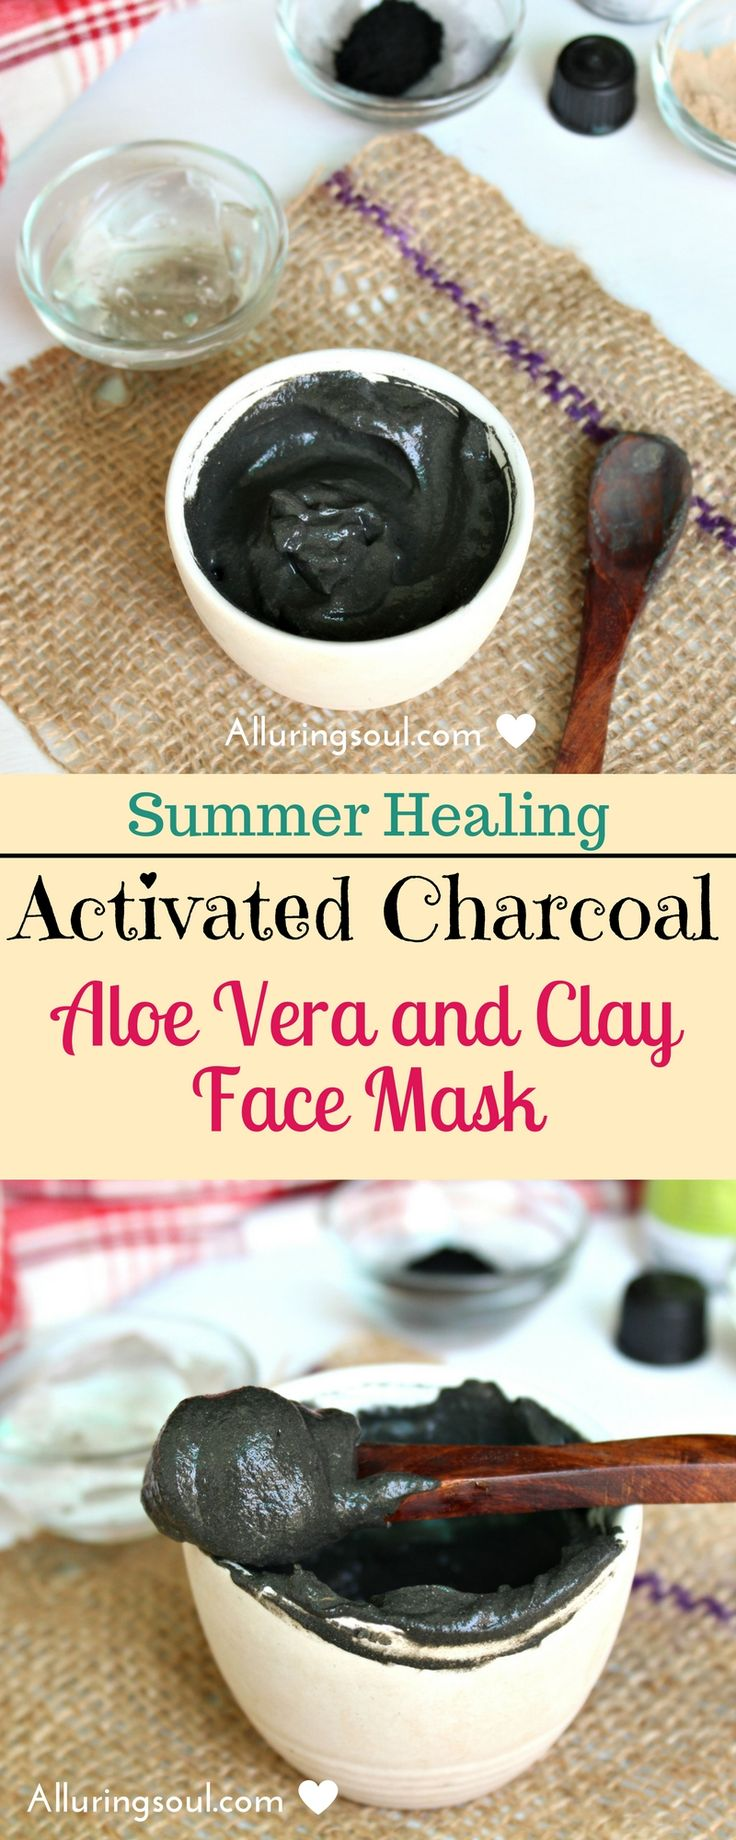 Activated charcoal face mask can heal your sunburnt skin with gentle exfoliation. It hydrates skin as well as reverses sun damages to skin.